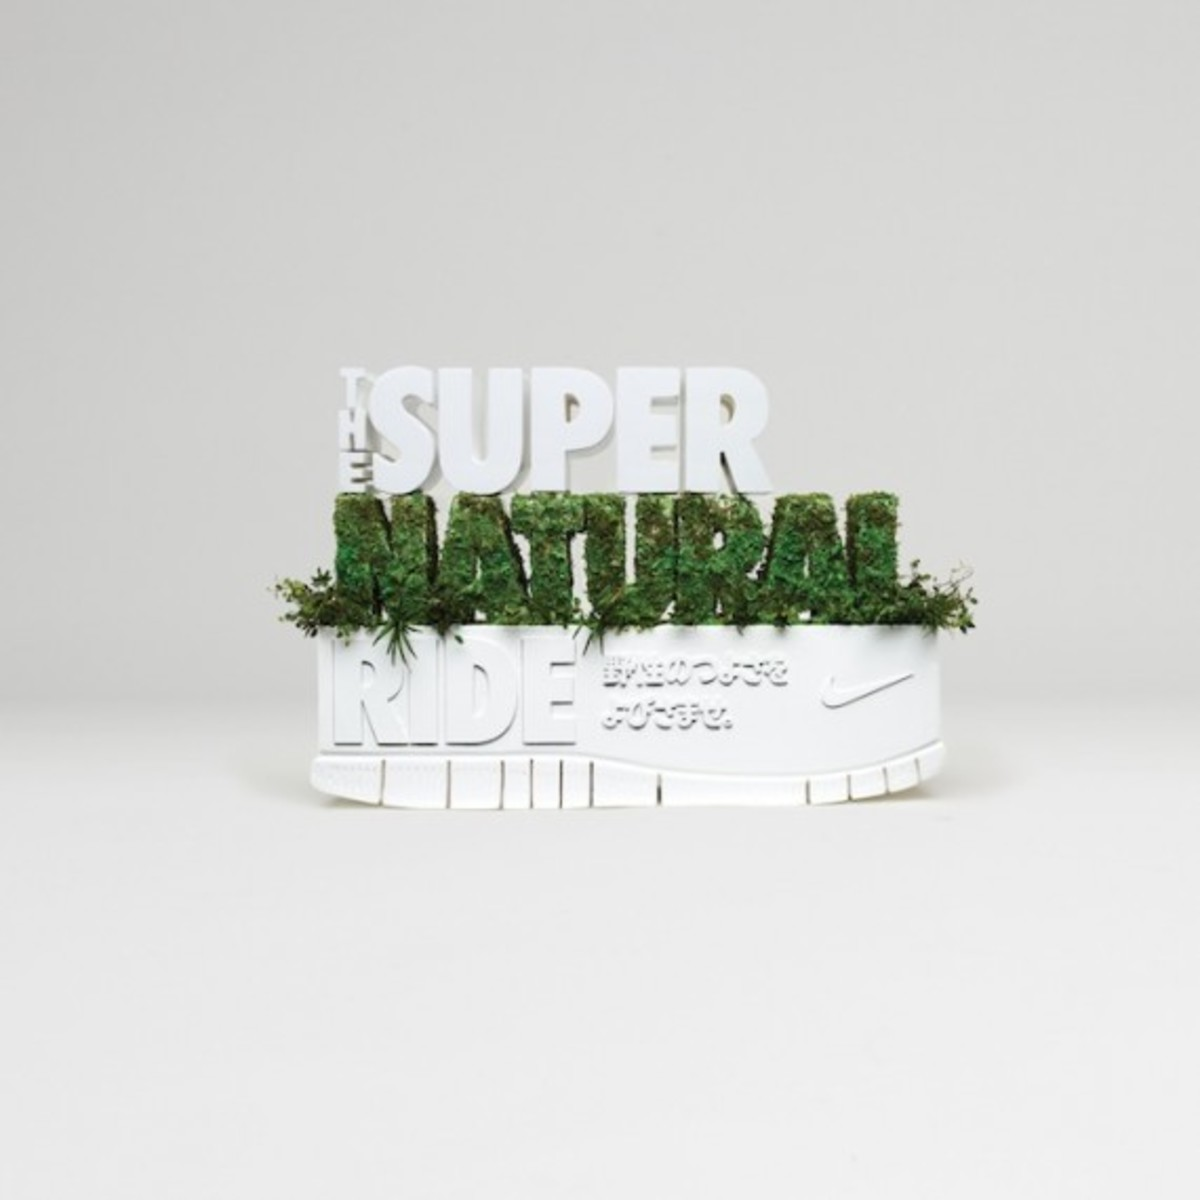 nike-free-the-super-natural-ride-exhibition-tokyo-01